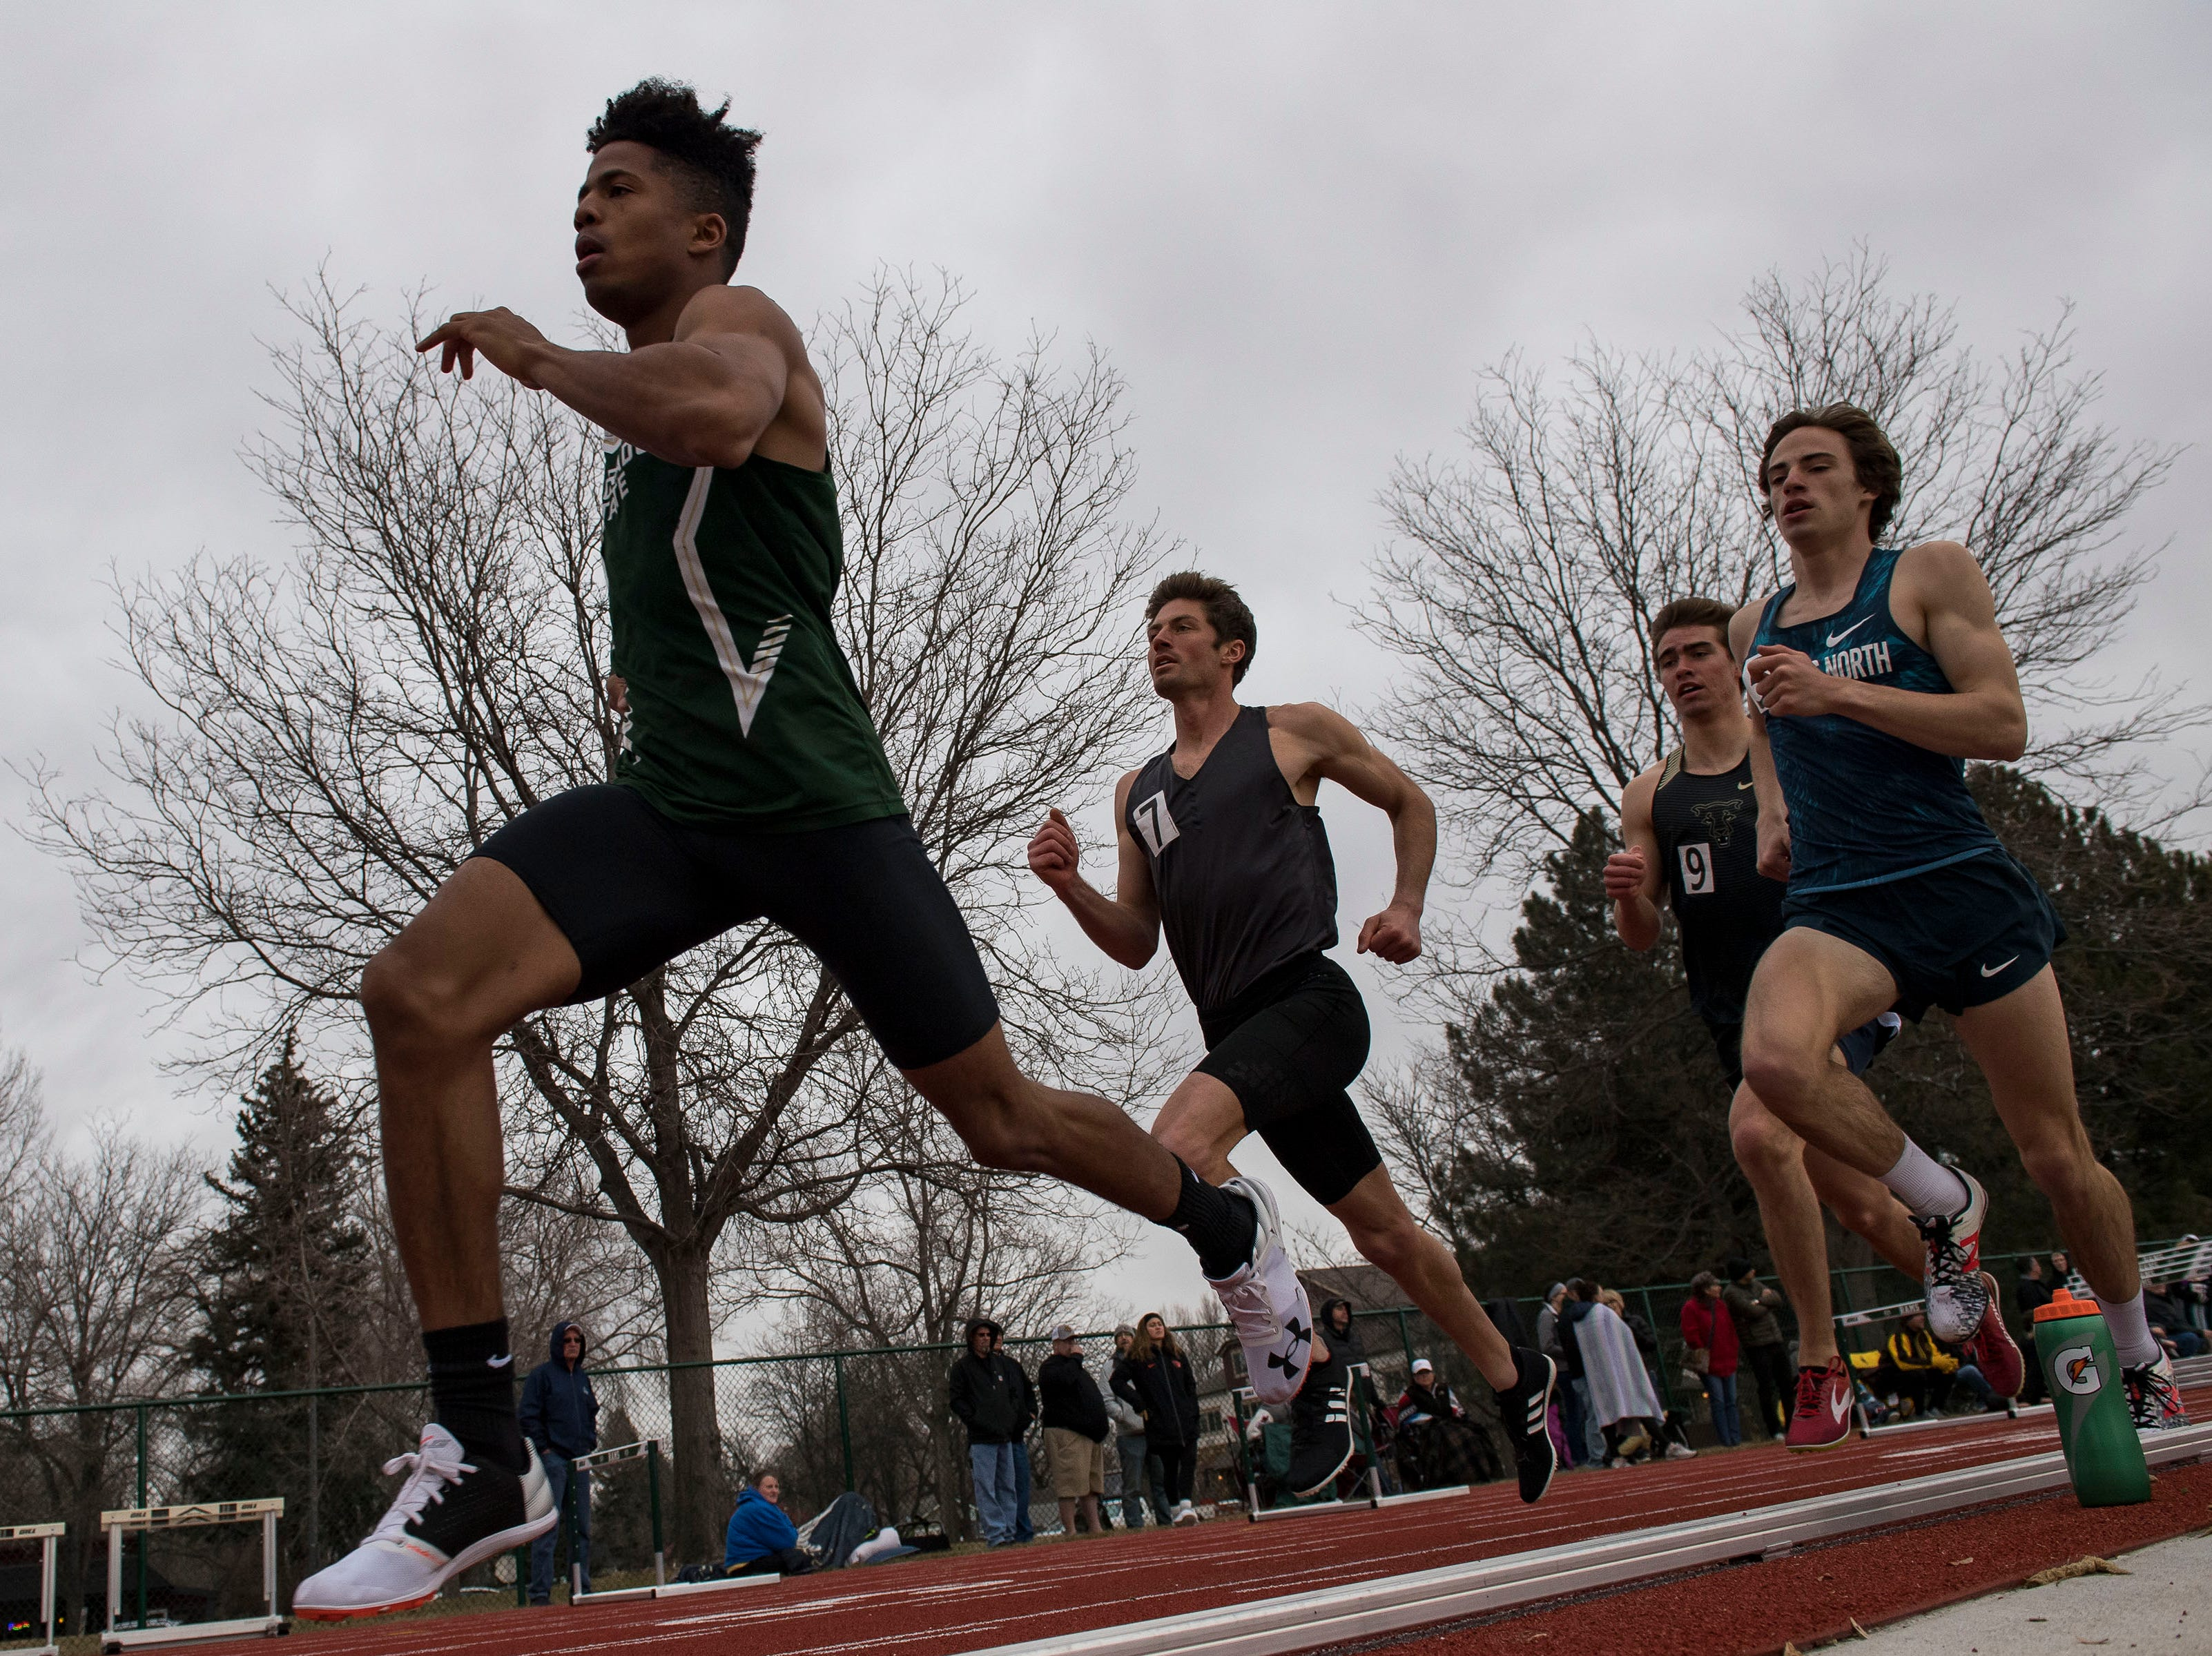 Colorado State University sophomore Yanique Borne competes in the mens 800-meter run on Saturday, March 23, 2019, at the Jack Christiansen Memorial Track in Fort Collins, Colo.